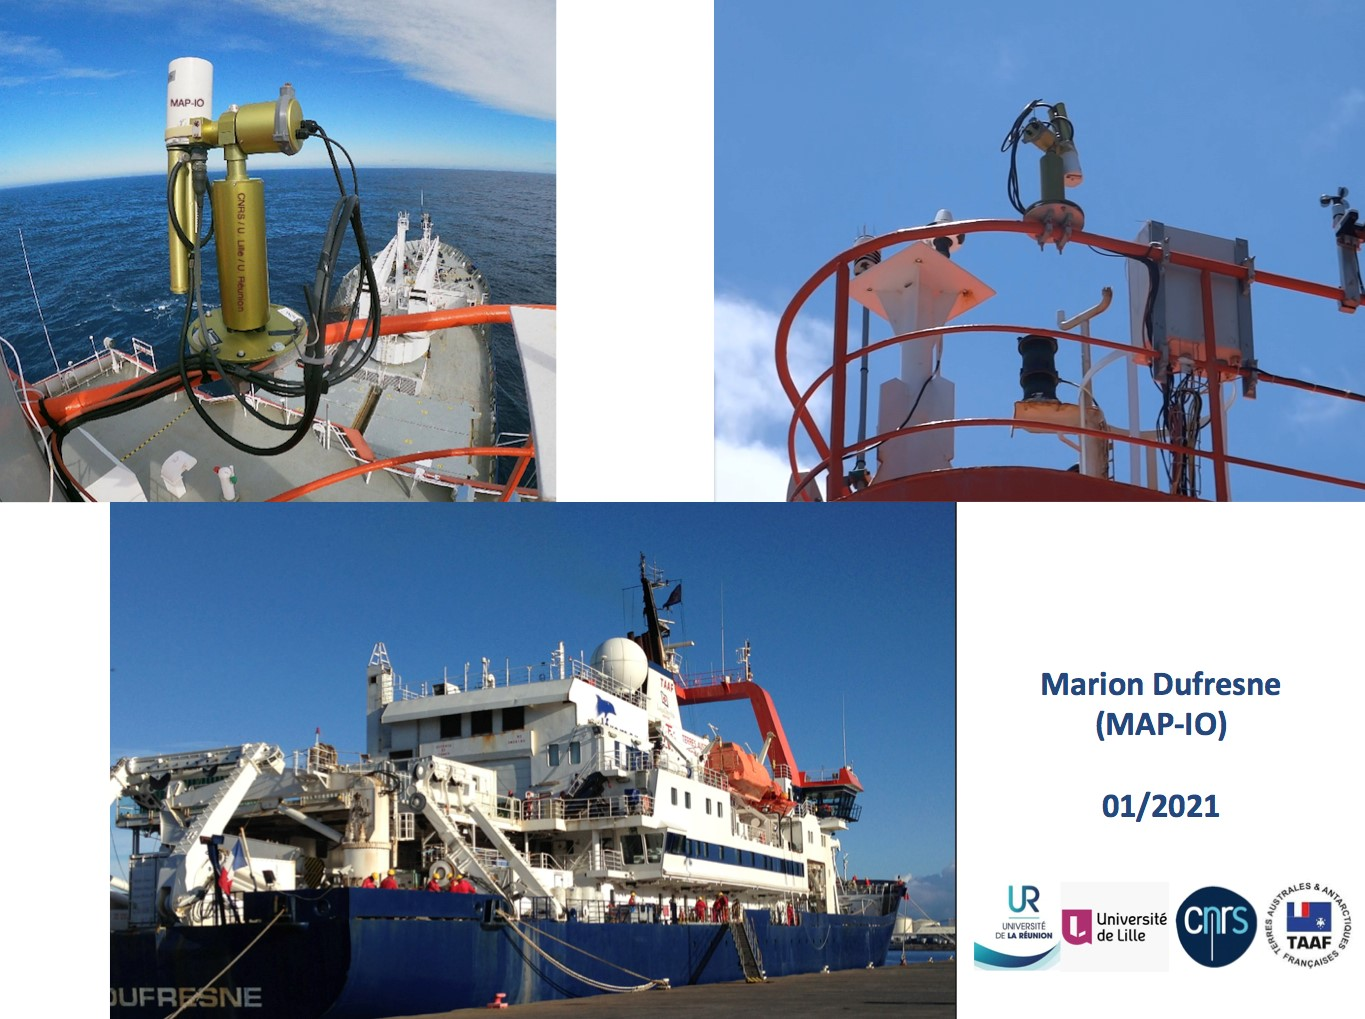 Overview of CIMEL 318T ship-photometer on-board Marion Dufresne